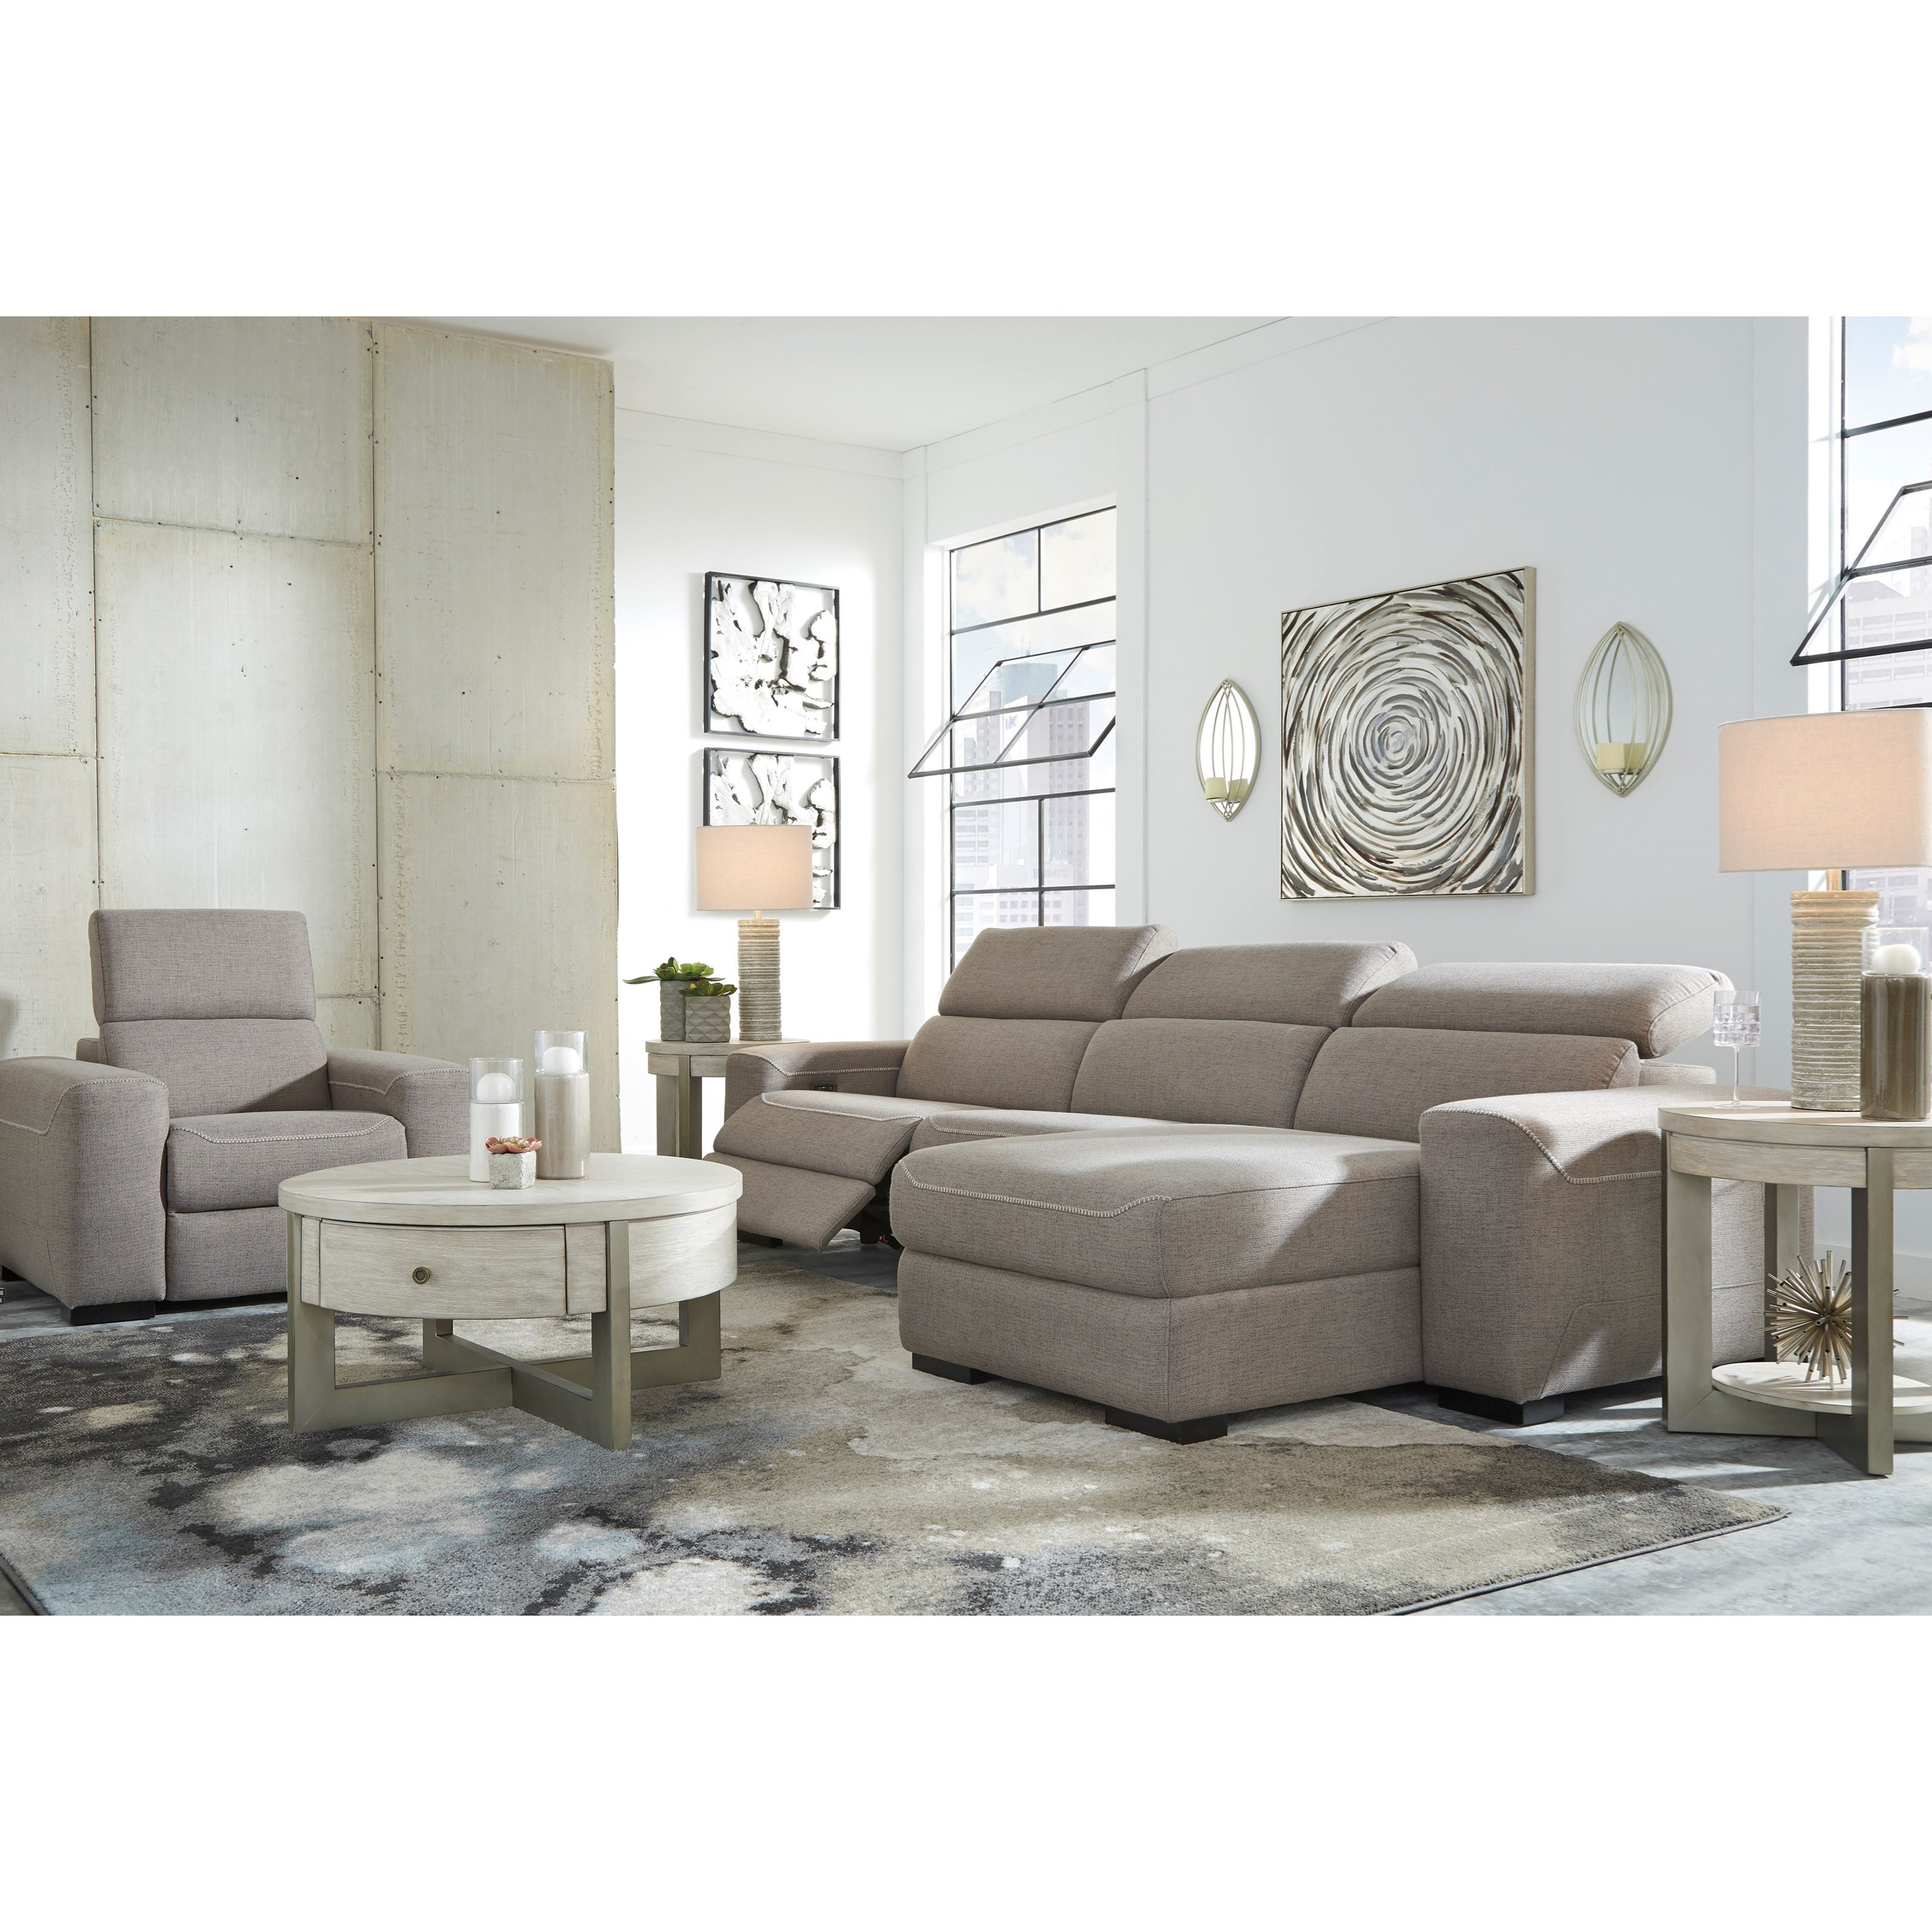 Mabton Power Reclining Living Room Group by Signature Design by Ashley at Rife's Home Furniture